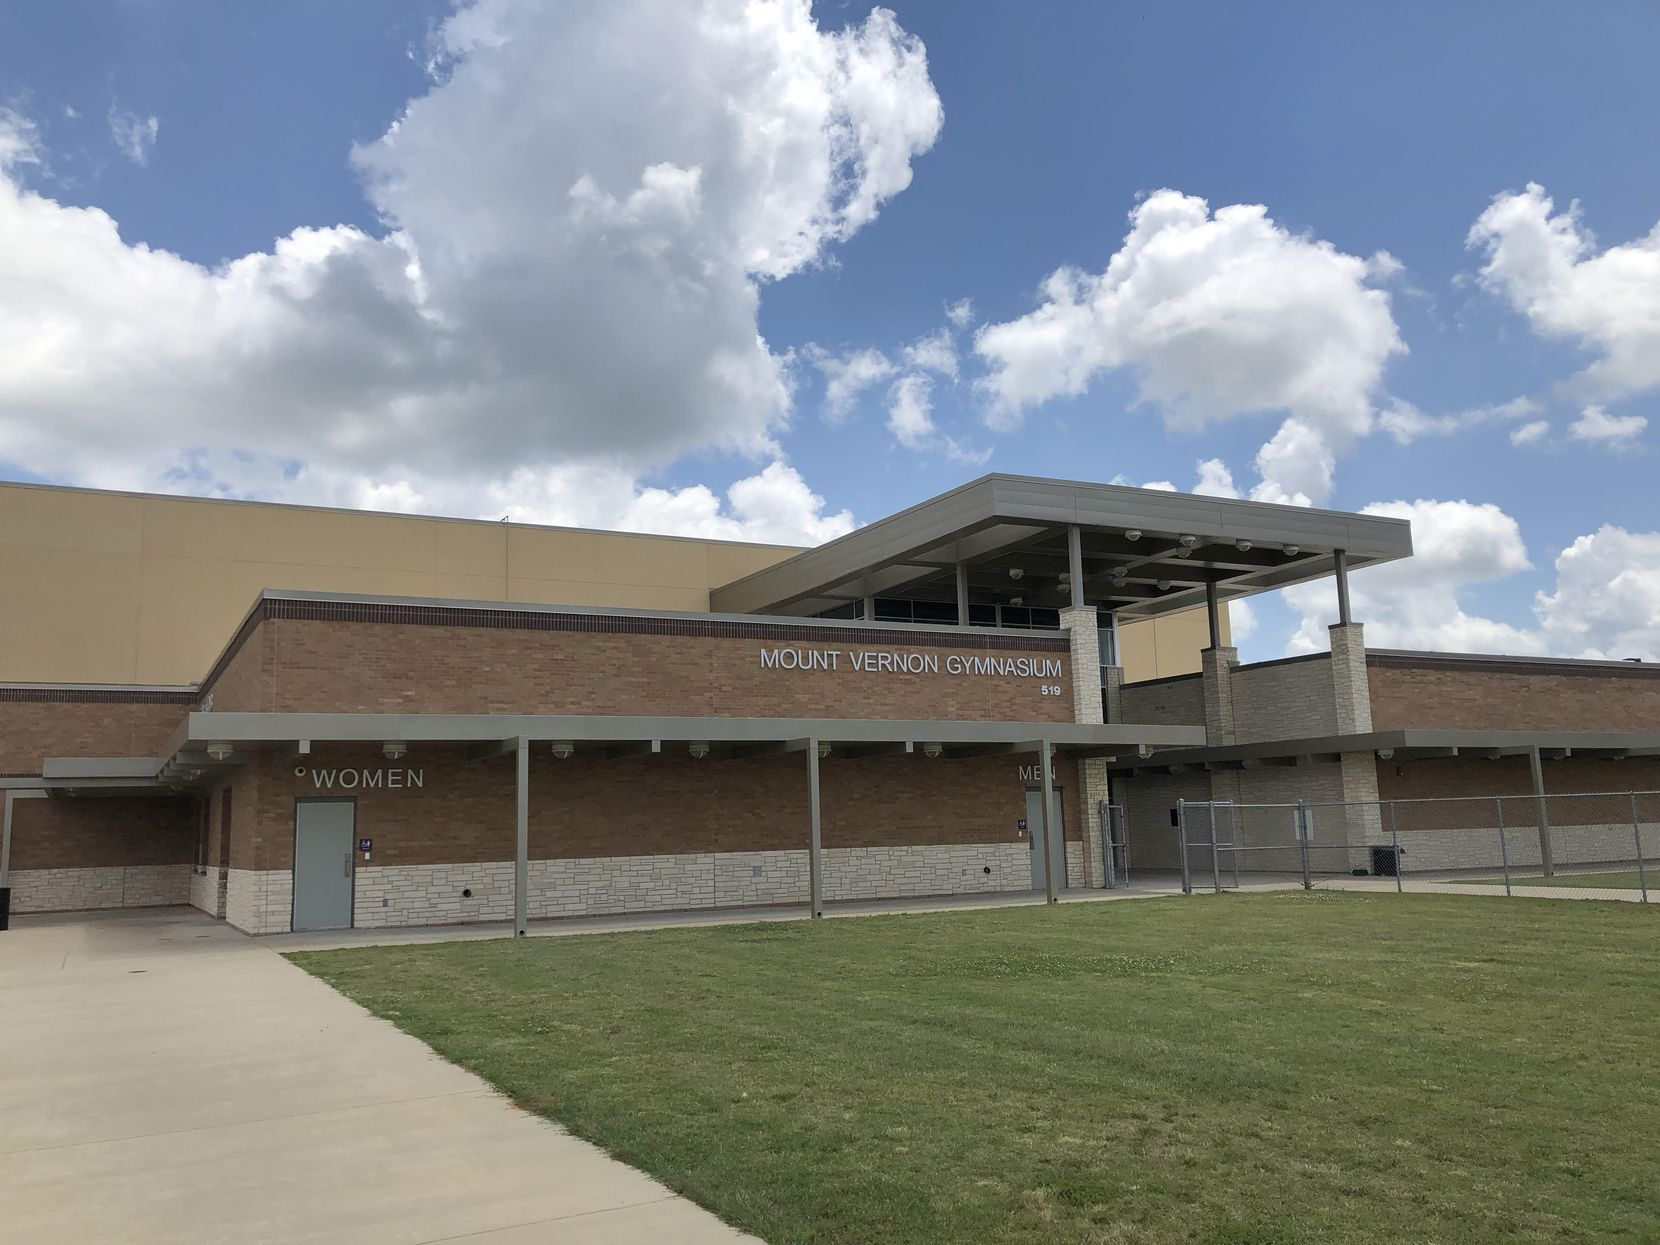 Mount Vernon, TX - Outside of Mount Vernon High School on Saturday, May 25. 2019